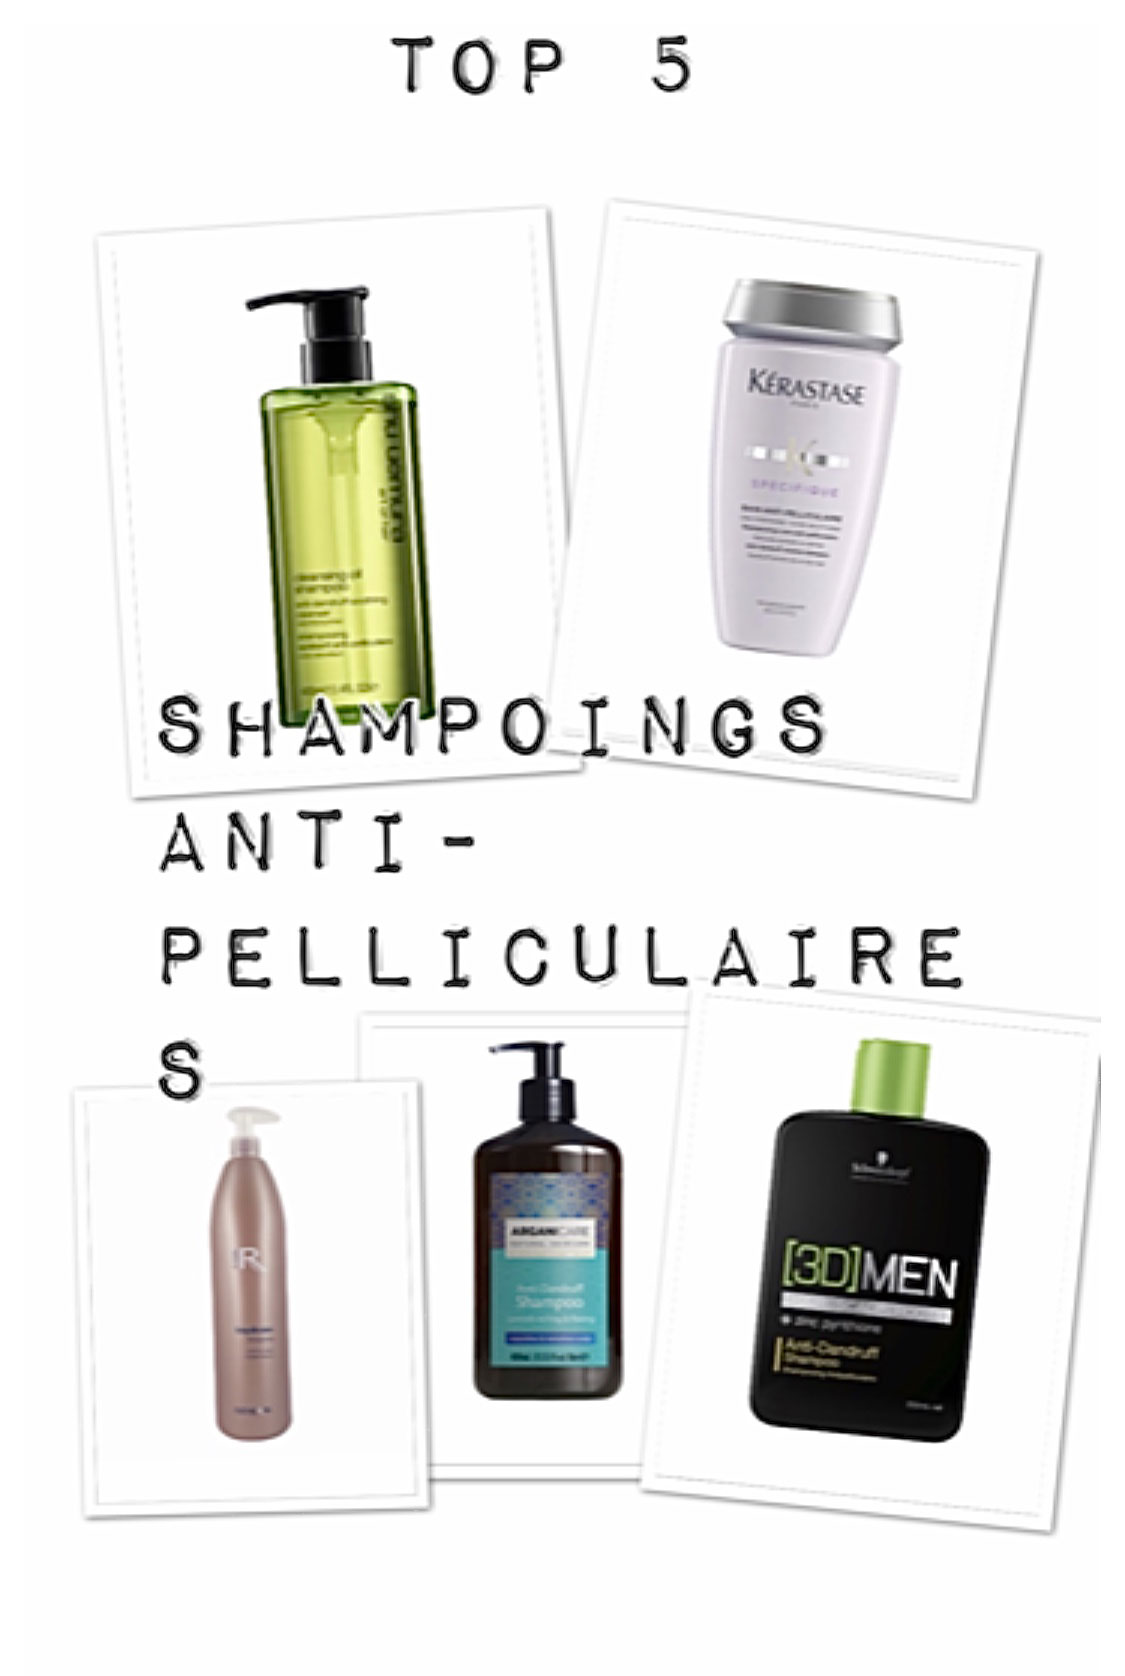 TOP 5 Shampooings Anti-Pelliculaires